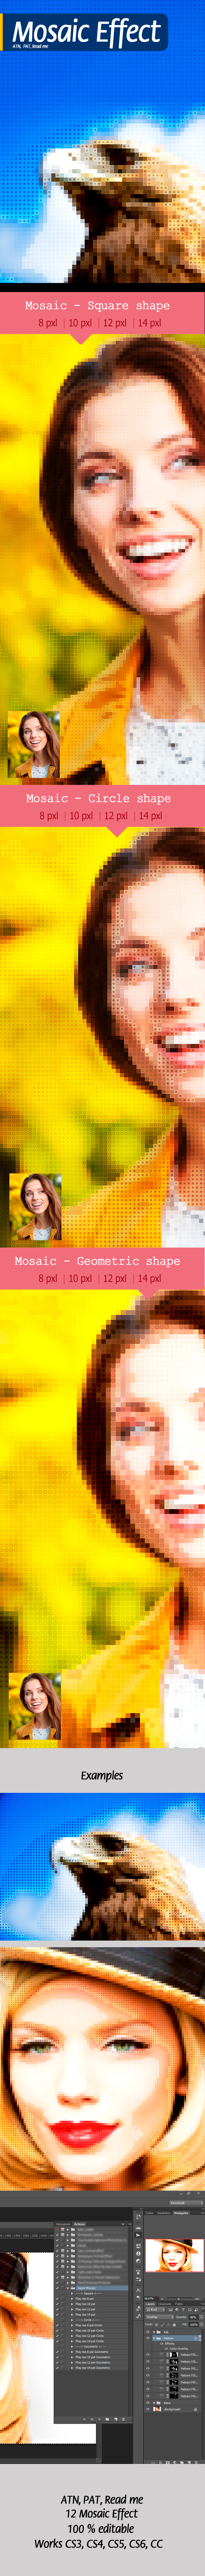 Mosaic Effect Photoshop Action - Actions Photoshop